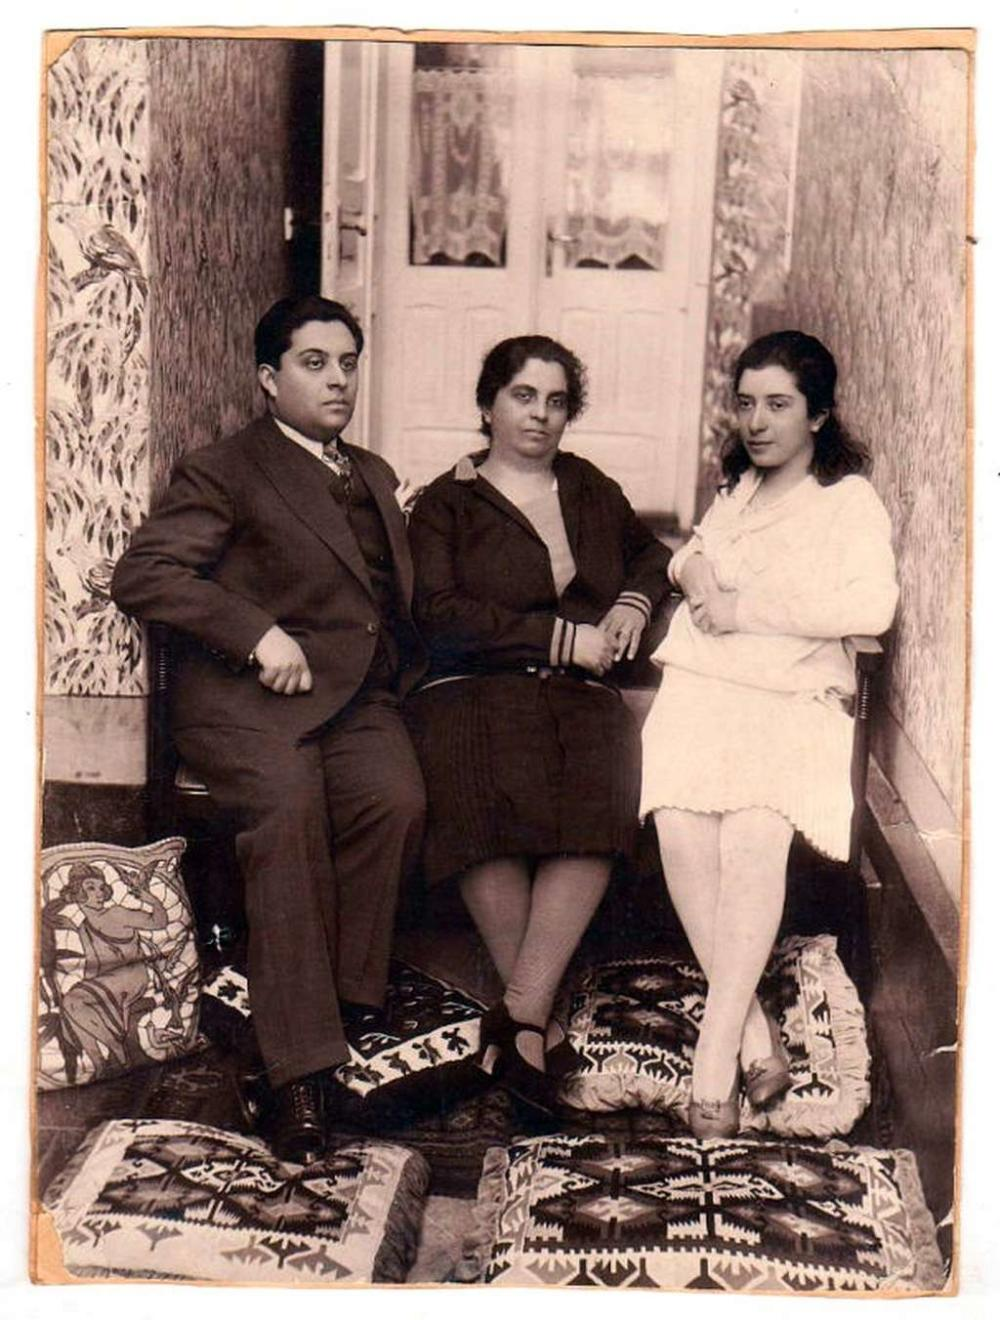 Old photo of a Jewish family